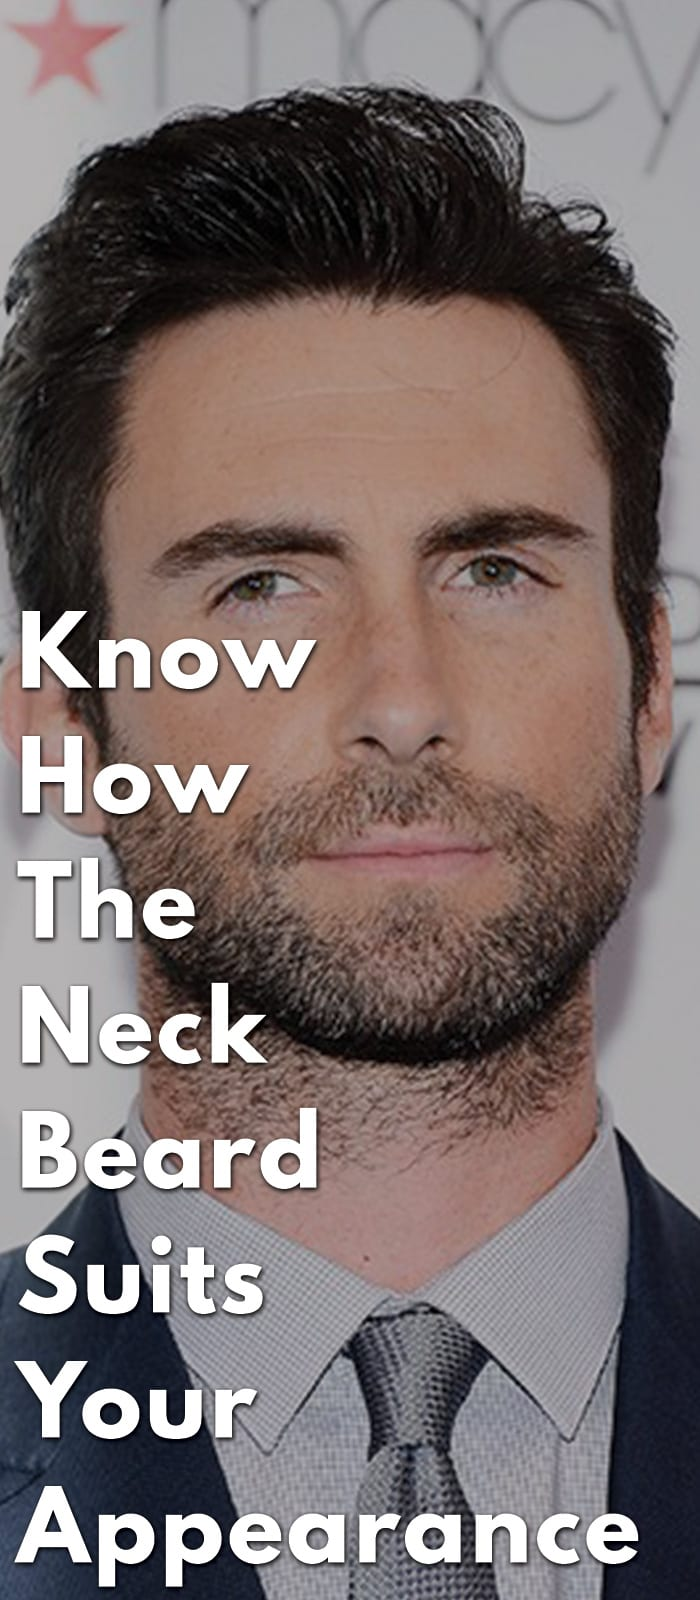 Know-How-The-Neck-Beard-Suits-Your-Appearance